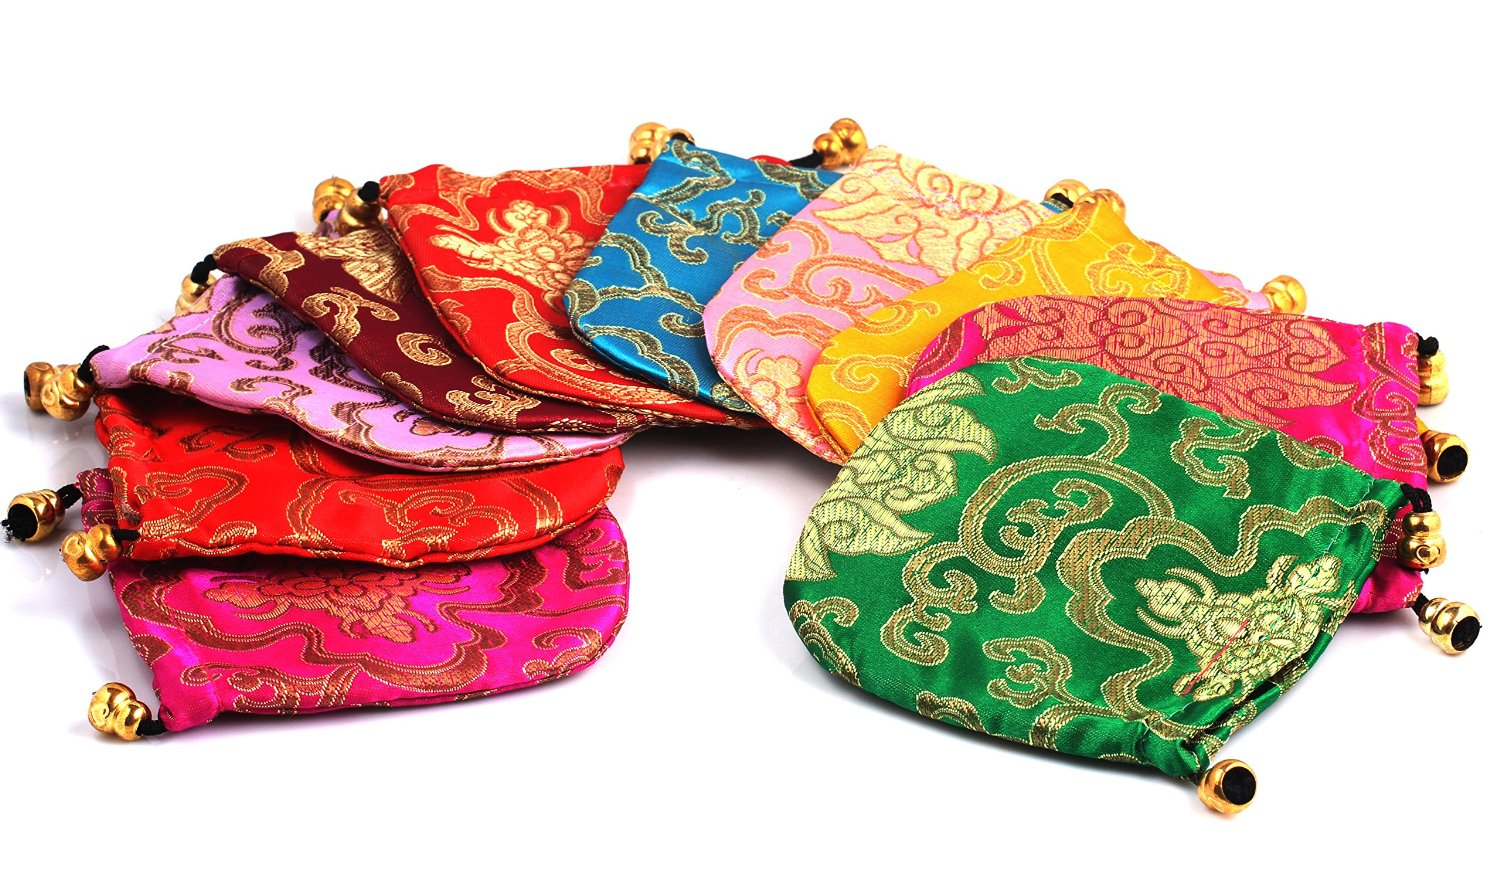 Best Ideas for Indian Bridal Shower Return Gifts under 15USD